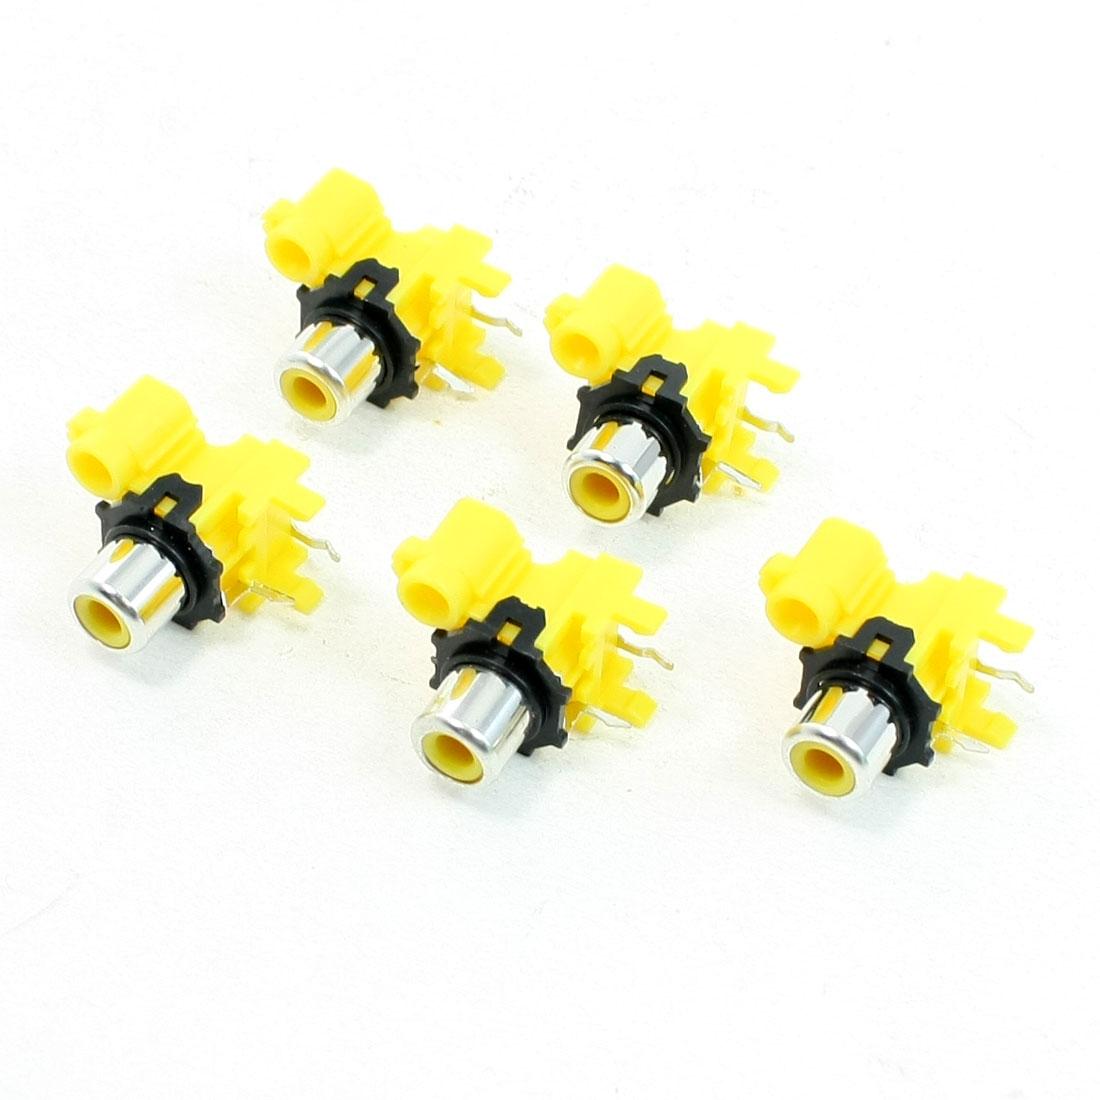 PCB Mounted RCA Audio Video Female Connector Yellow 5 Pcs